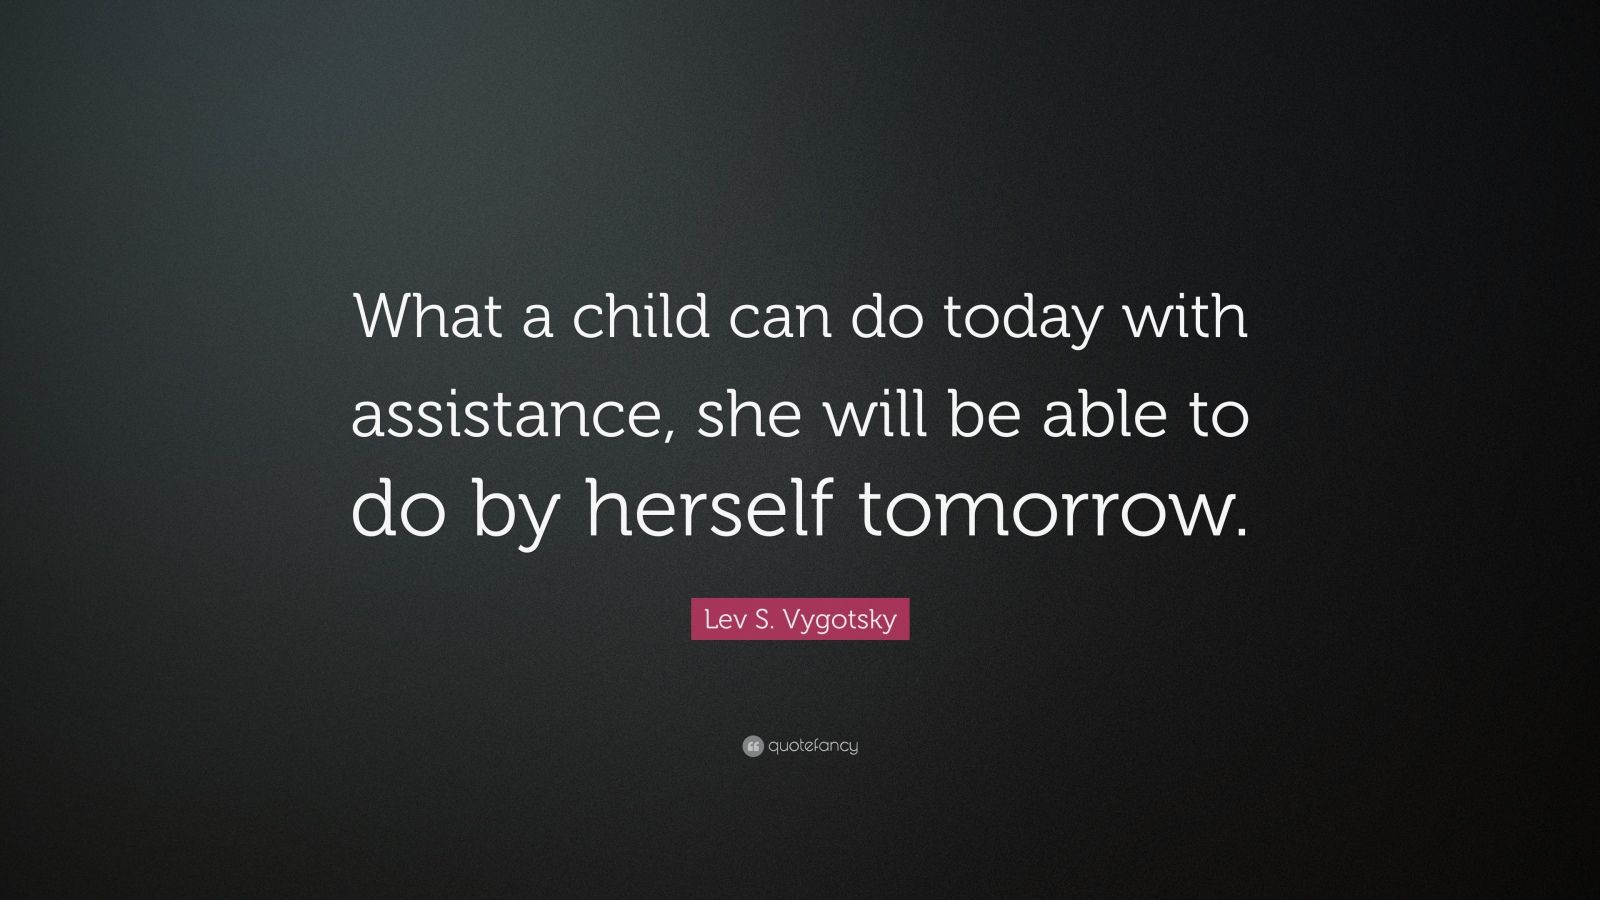 """Lev S. Vygotsky Quote: """"What a child can do today with assistance, she will be able to do by herself tomorrow."""""""